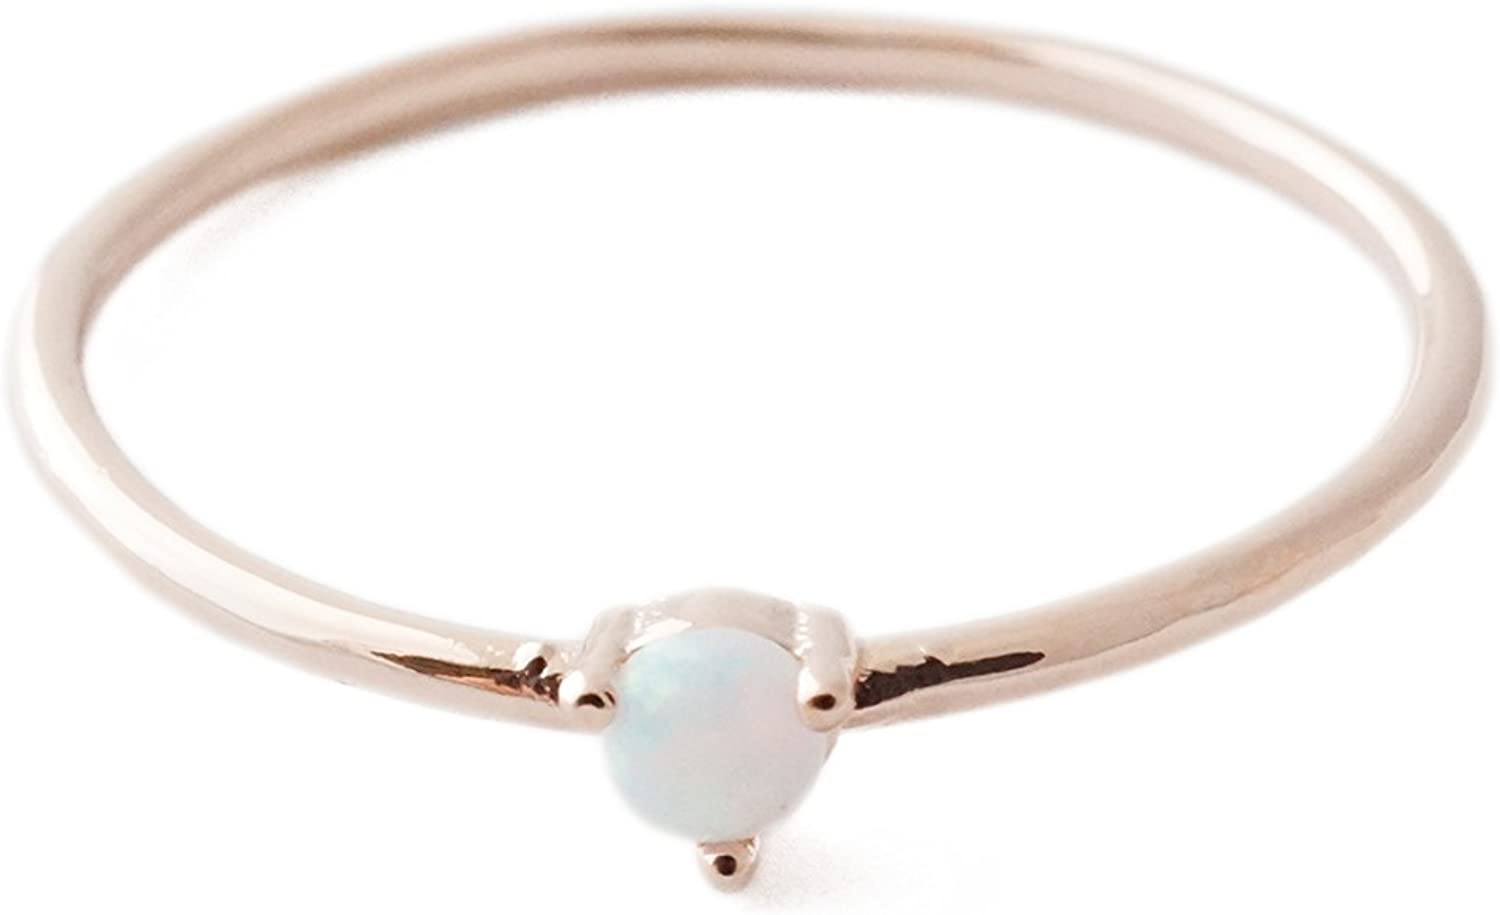 HONEYCAT Opal Orb Crystal Ring in Gold, Rose Gold, or Silver | Minimalist, Delicate Jewelry